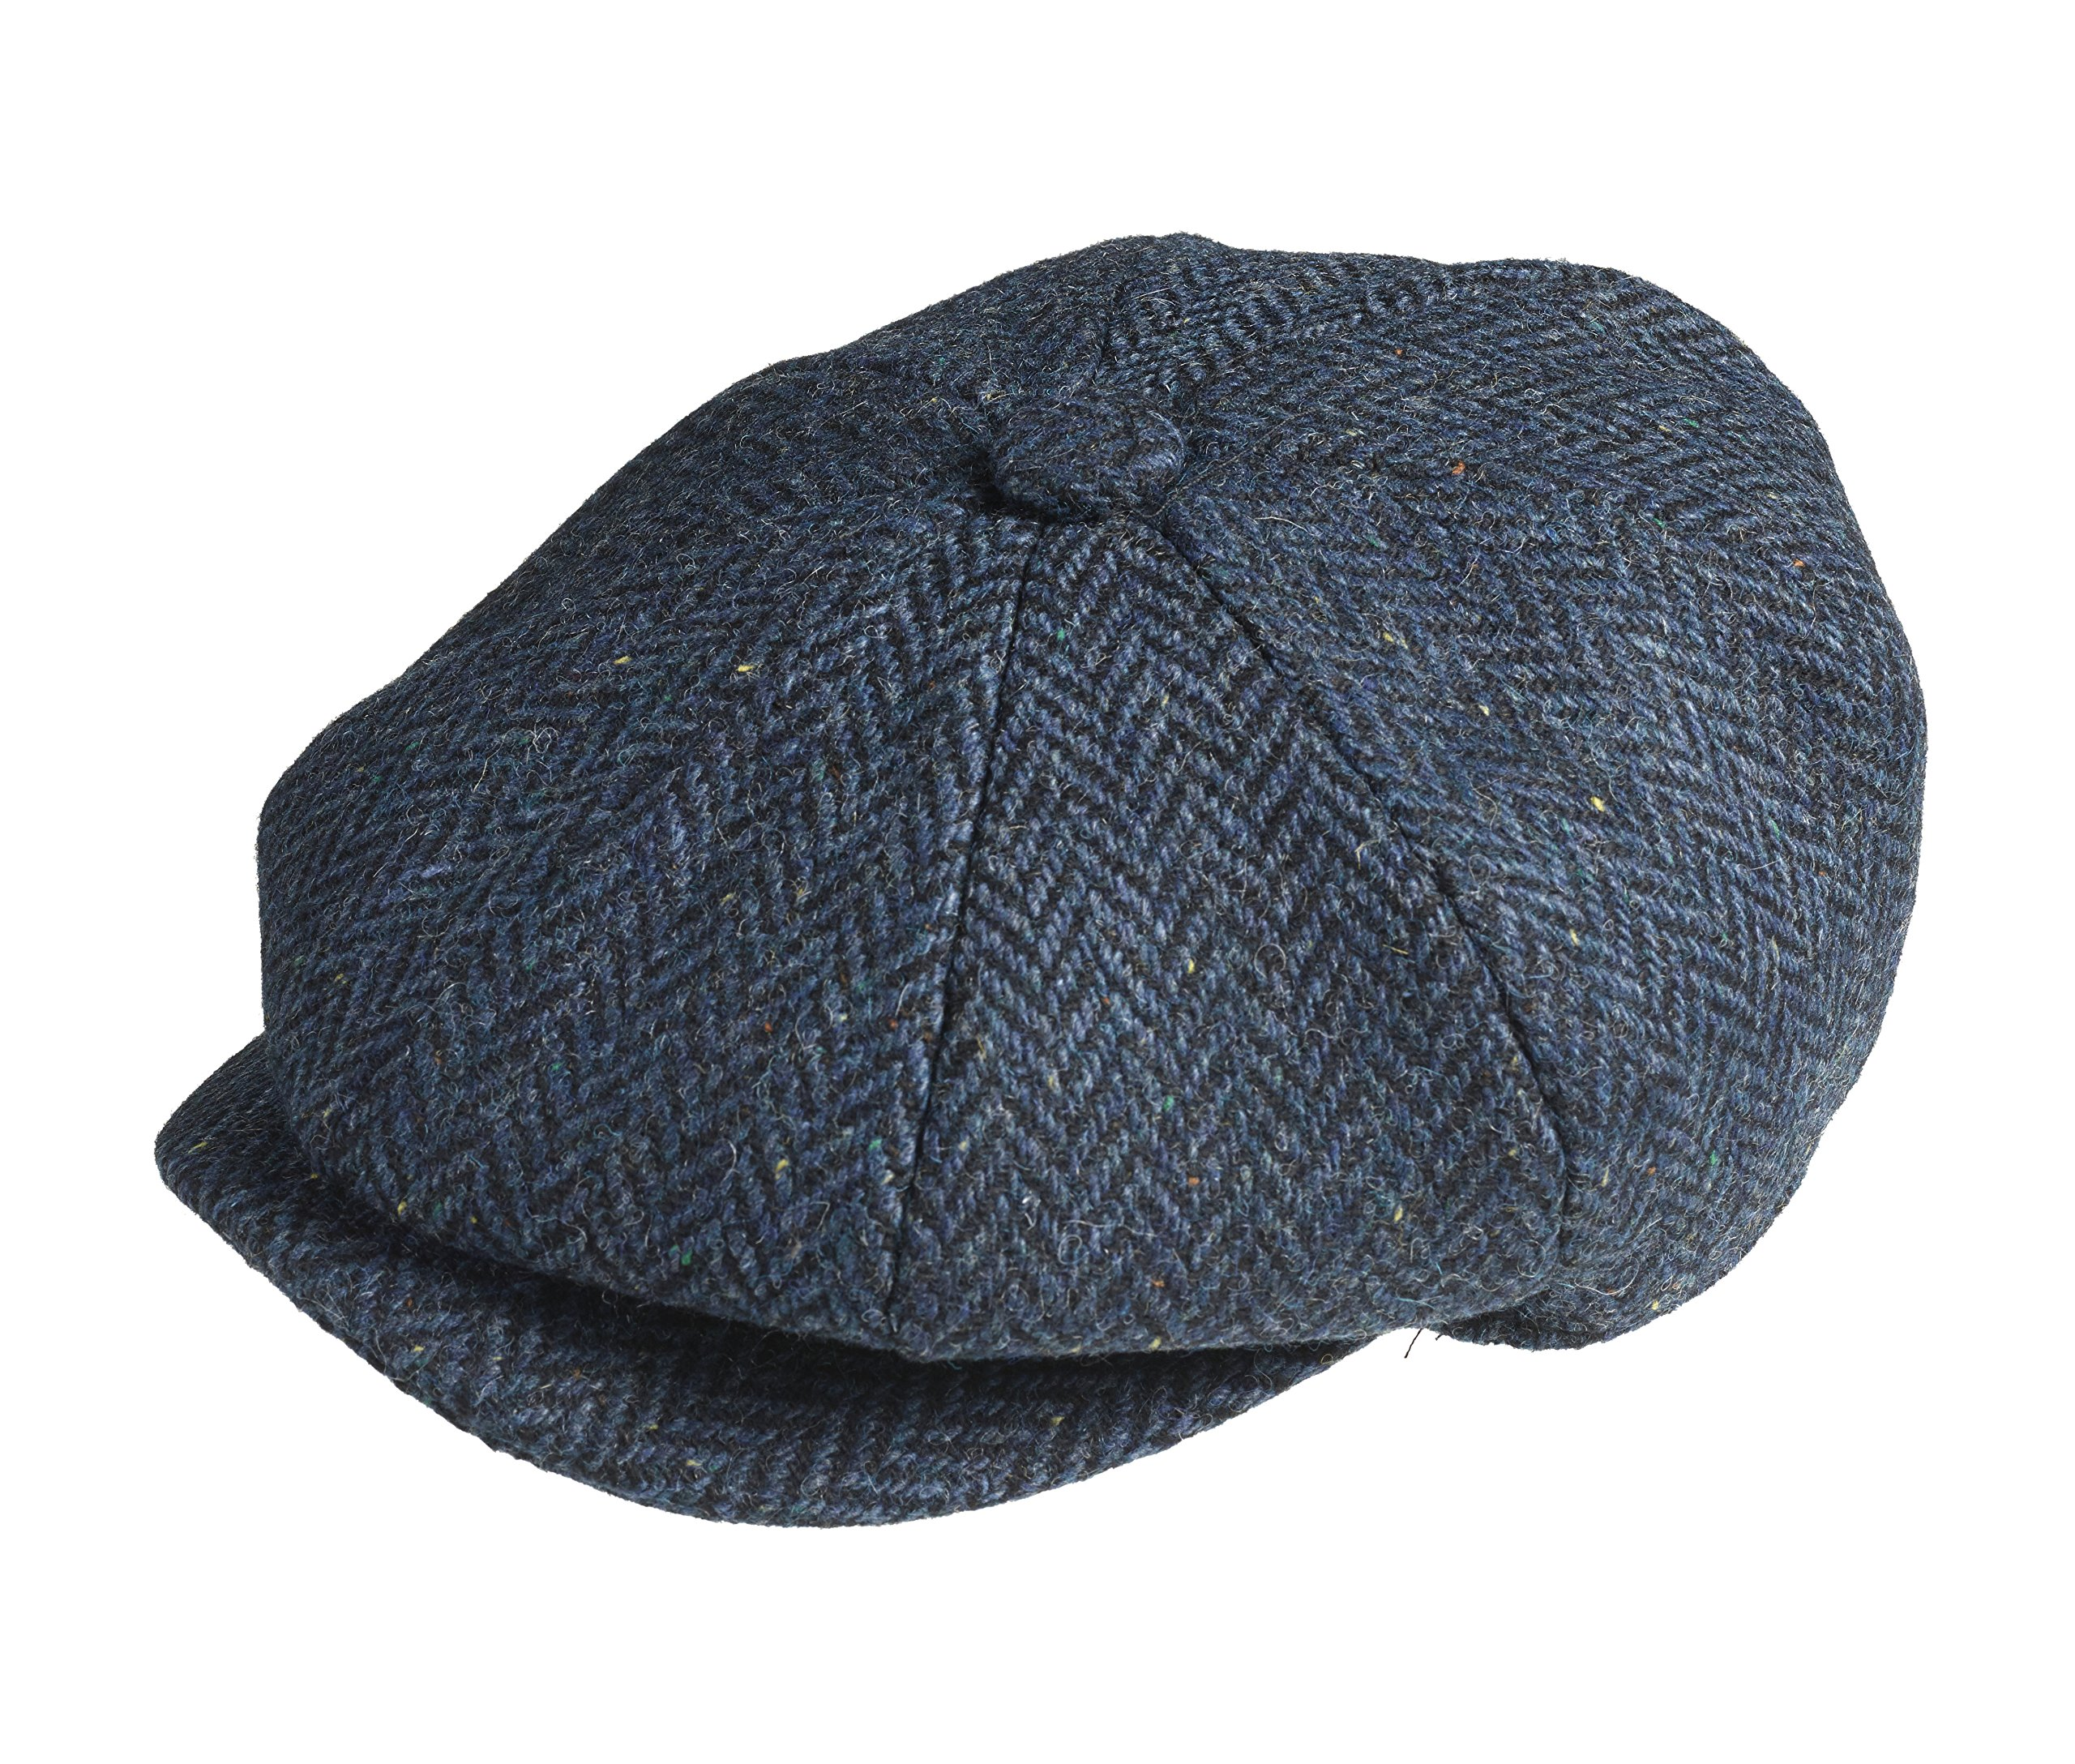 fd4718c3018 Peaky Blinders 8 Piece  Newsboy  Style Flat Cap -100% Wool Fabric Variations